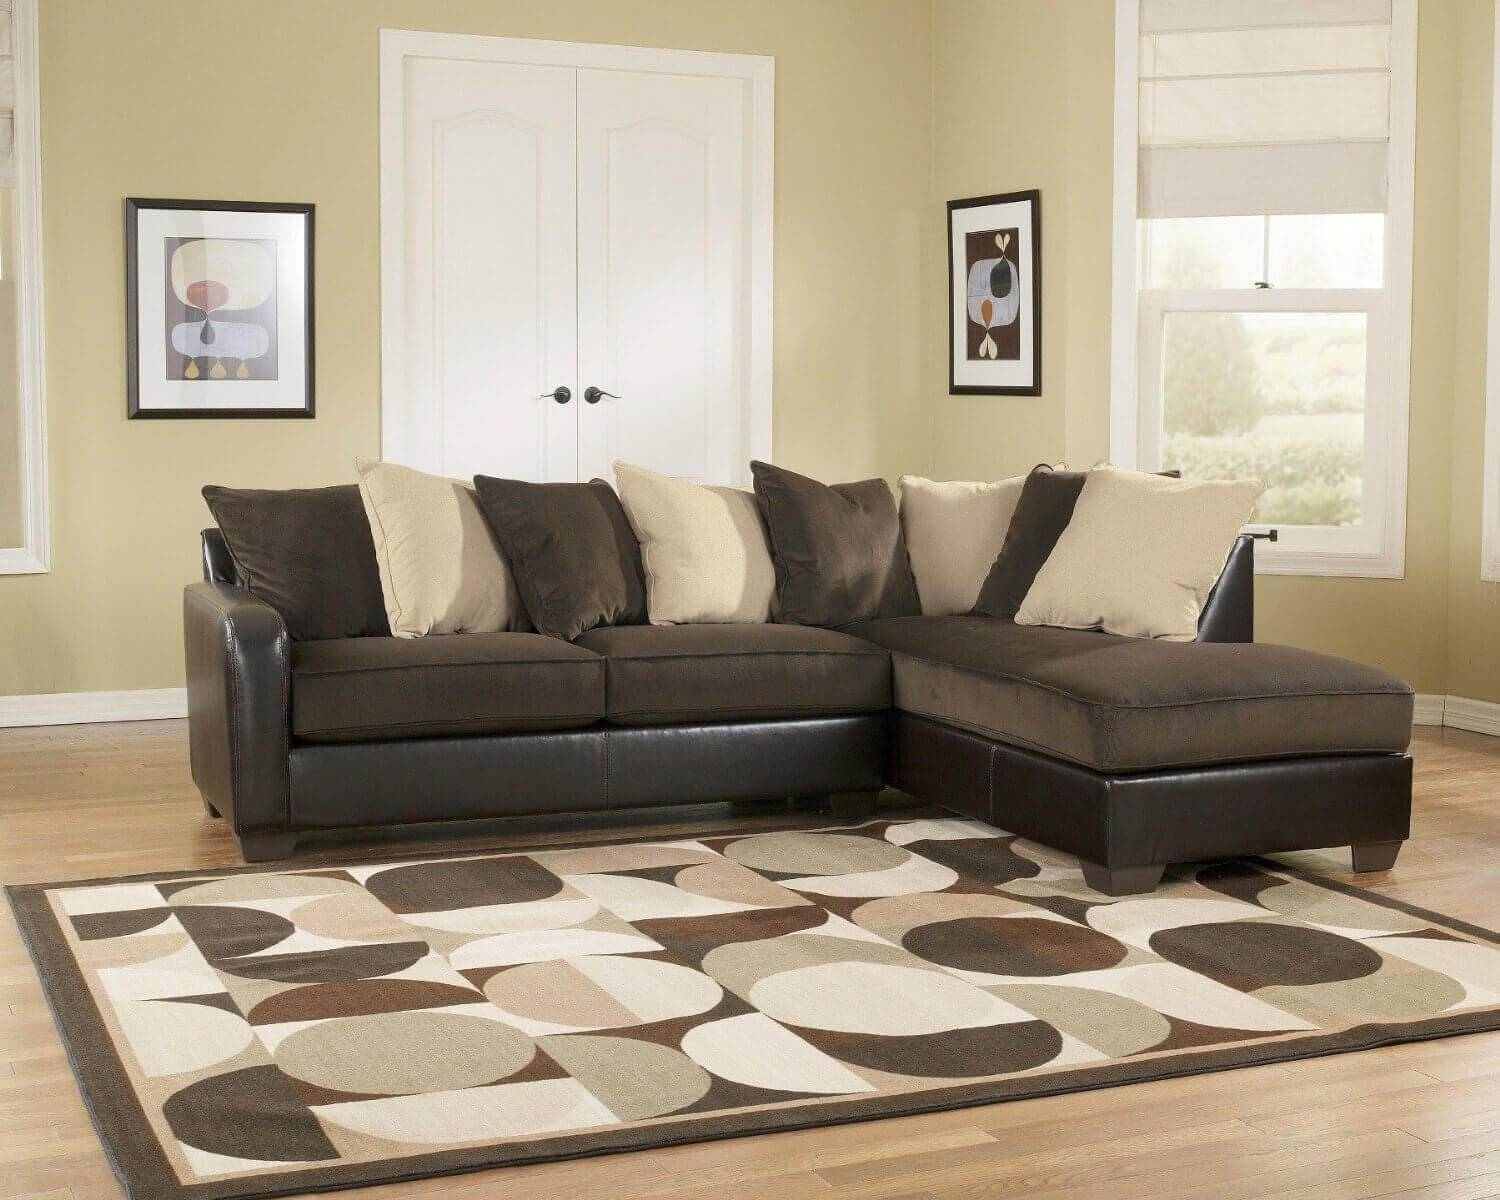 Furniture: Modular Sectional Sofa | Sofa Sectionals | Sofa Sectionals throughout Ashley Faux Leather Sectional Sofas (Image 8 of 15)